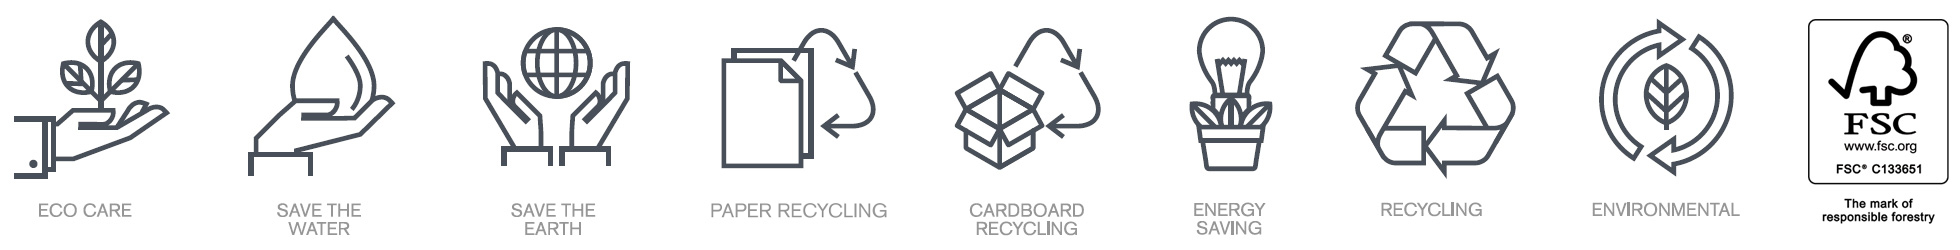 icone-ecofriendly-packaging